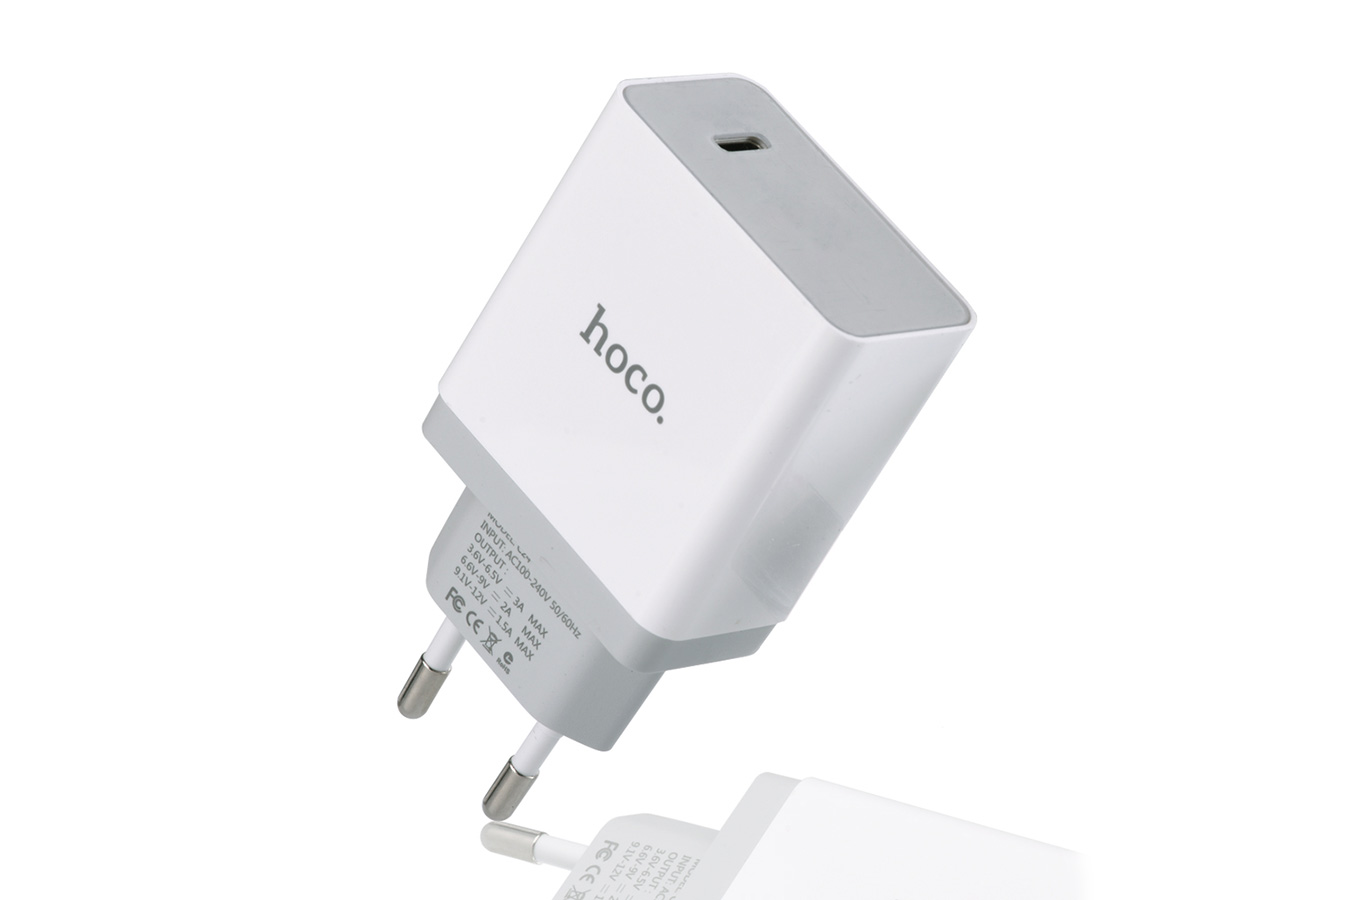 Зарядка Hoco C24 Type-C Quick Charge 3.0 белого цвета